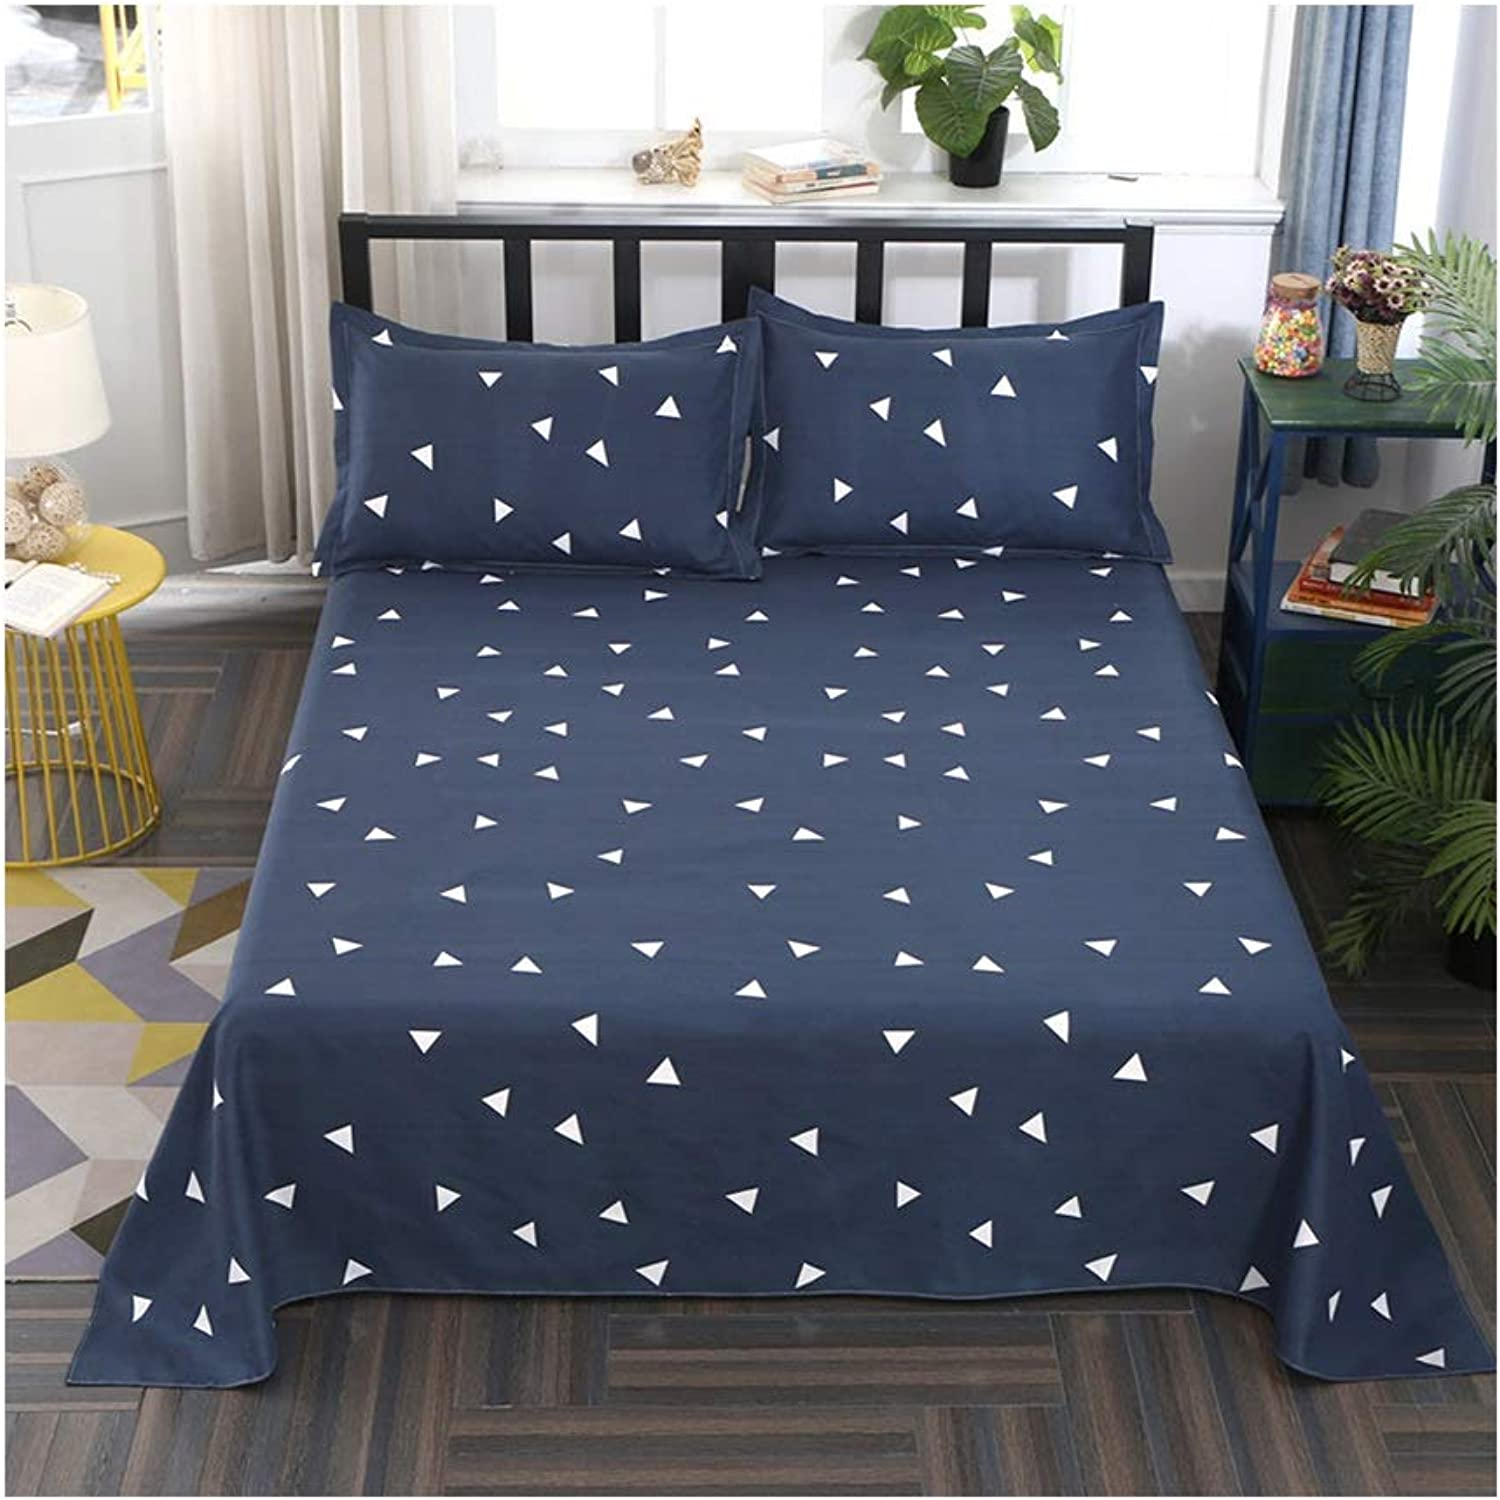 Dark Sheets 100% Cotton Sanding Thick Single 1.8 1.5 1.2m Bedroom Hotel Dormitory Double 2.5 2.3m Bed Cover (color   C, Size   180  230cm)